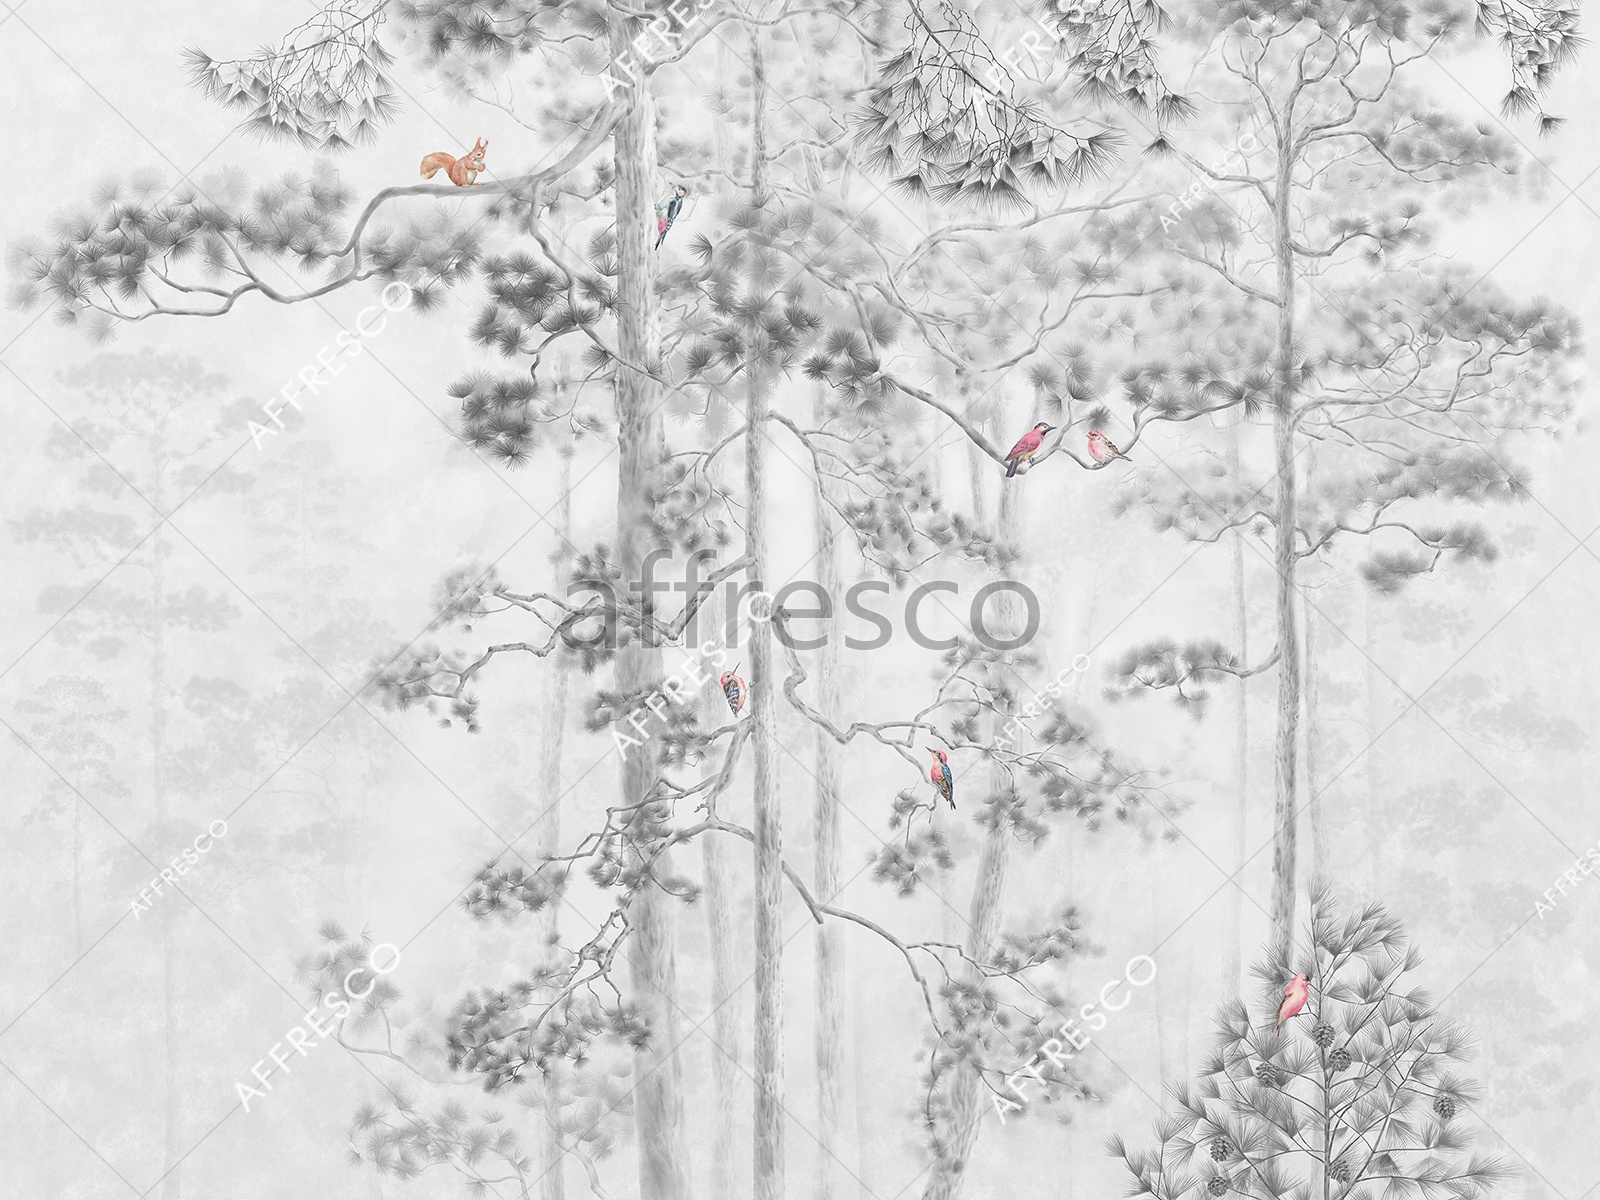 AF518-COL3 | Atmosphere | Affresco Factory